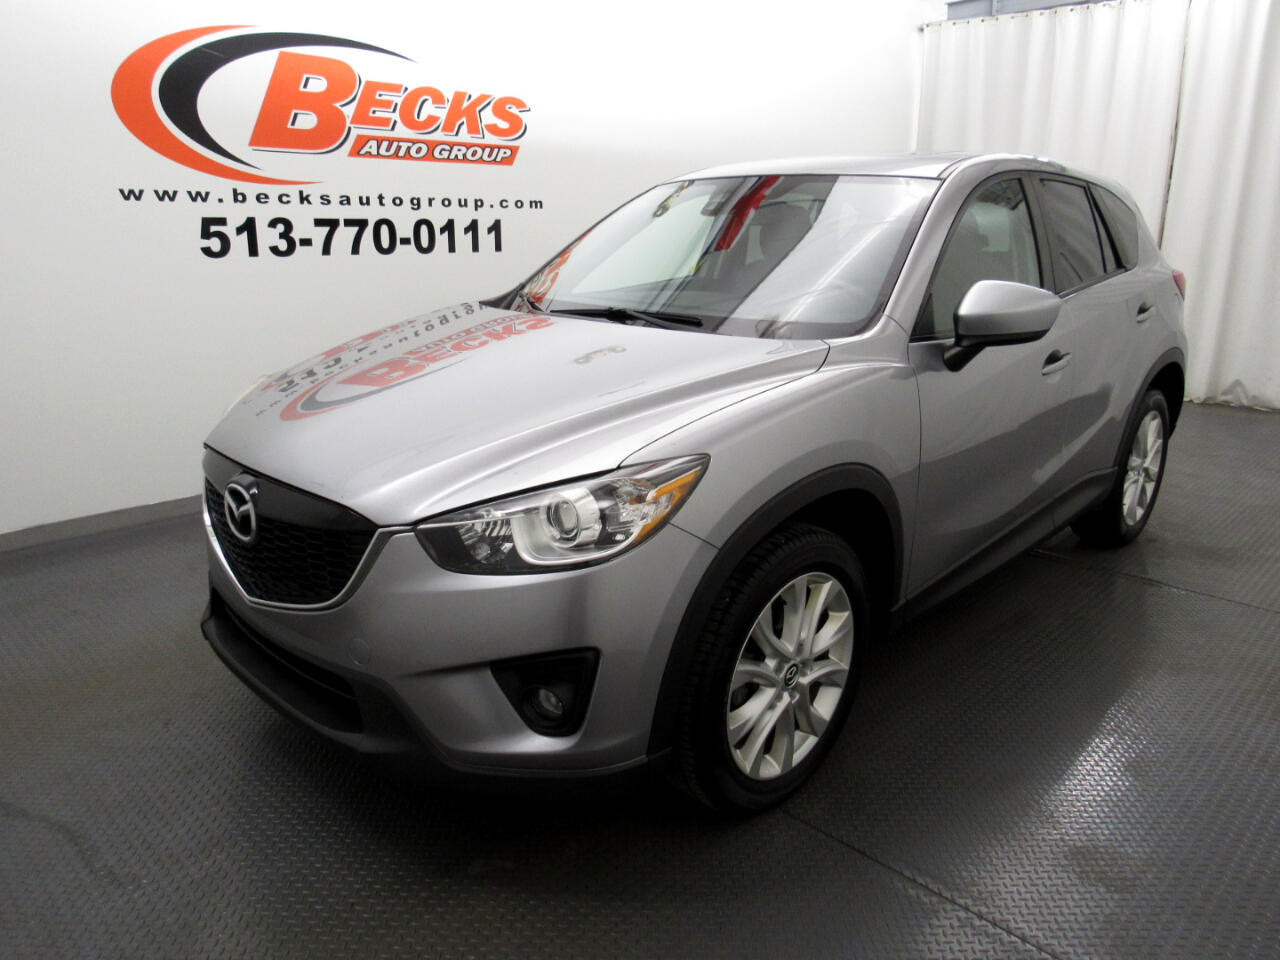 2014 Mazda CX-5 AWD 4dr Auto Grand Touring